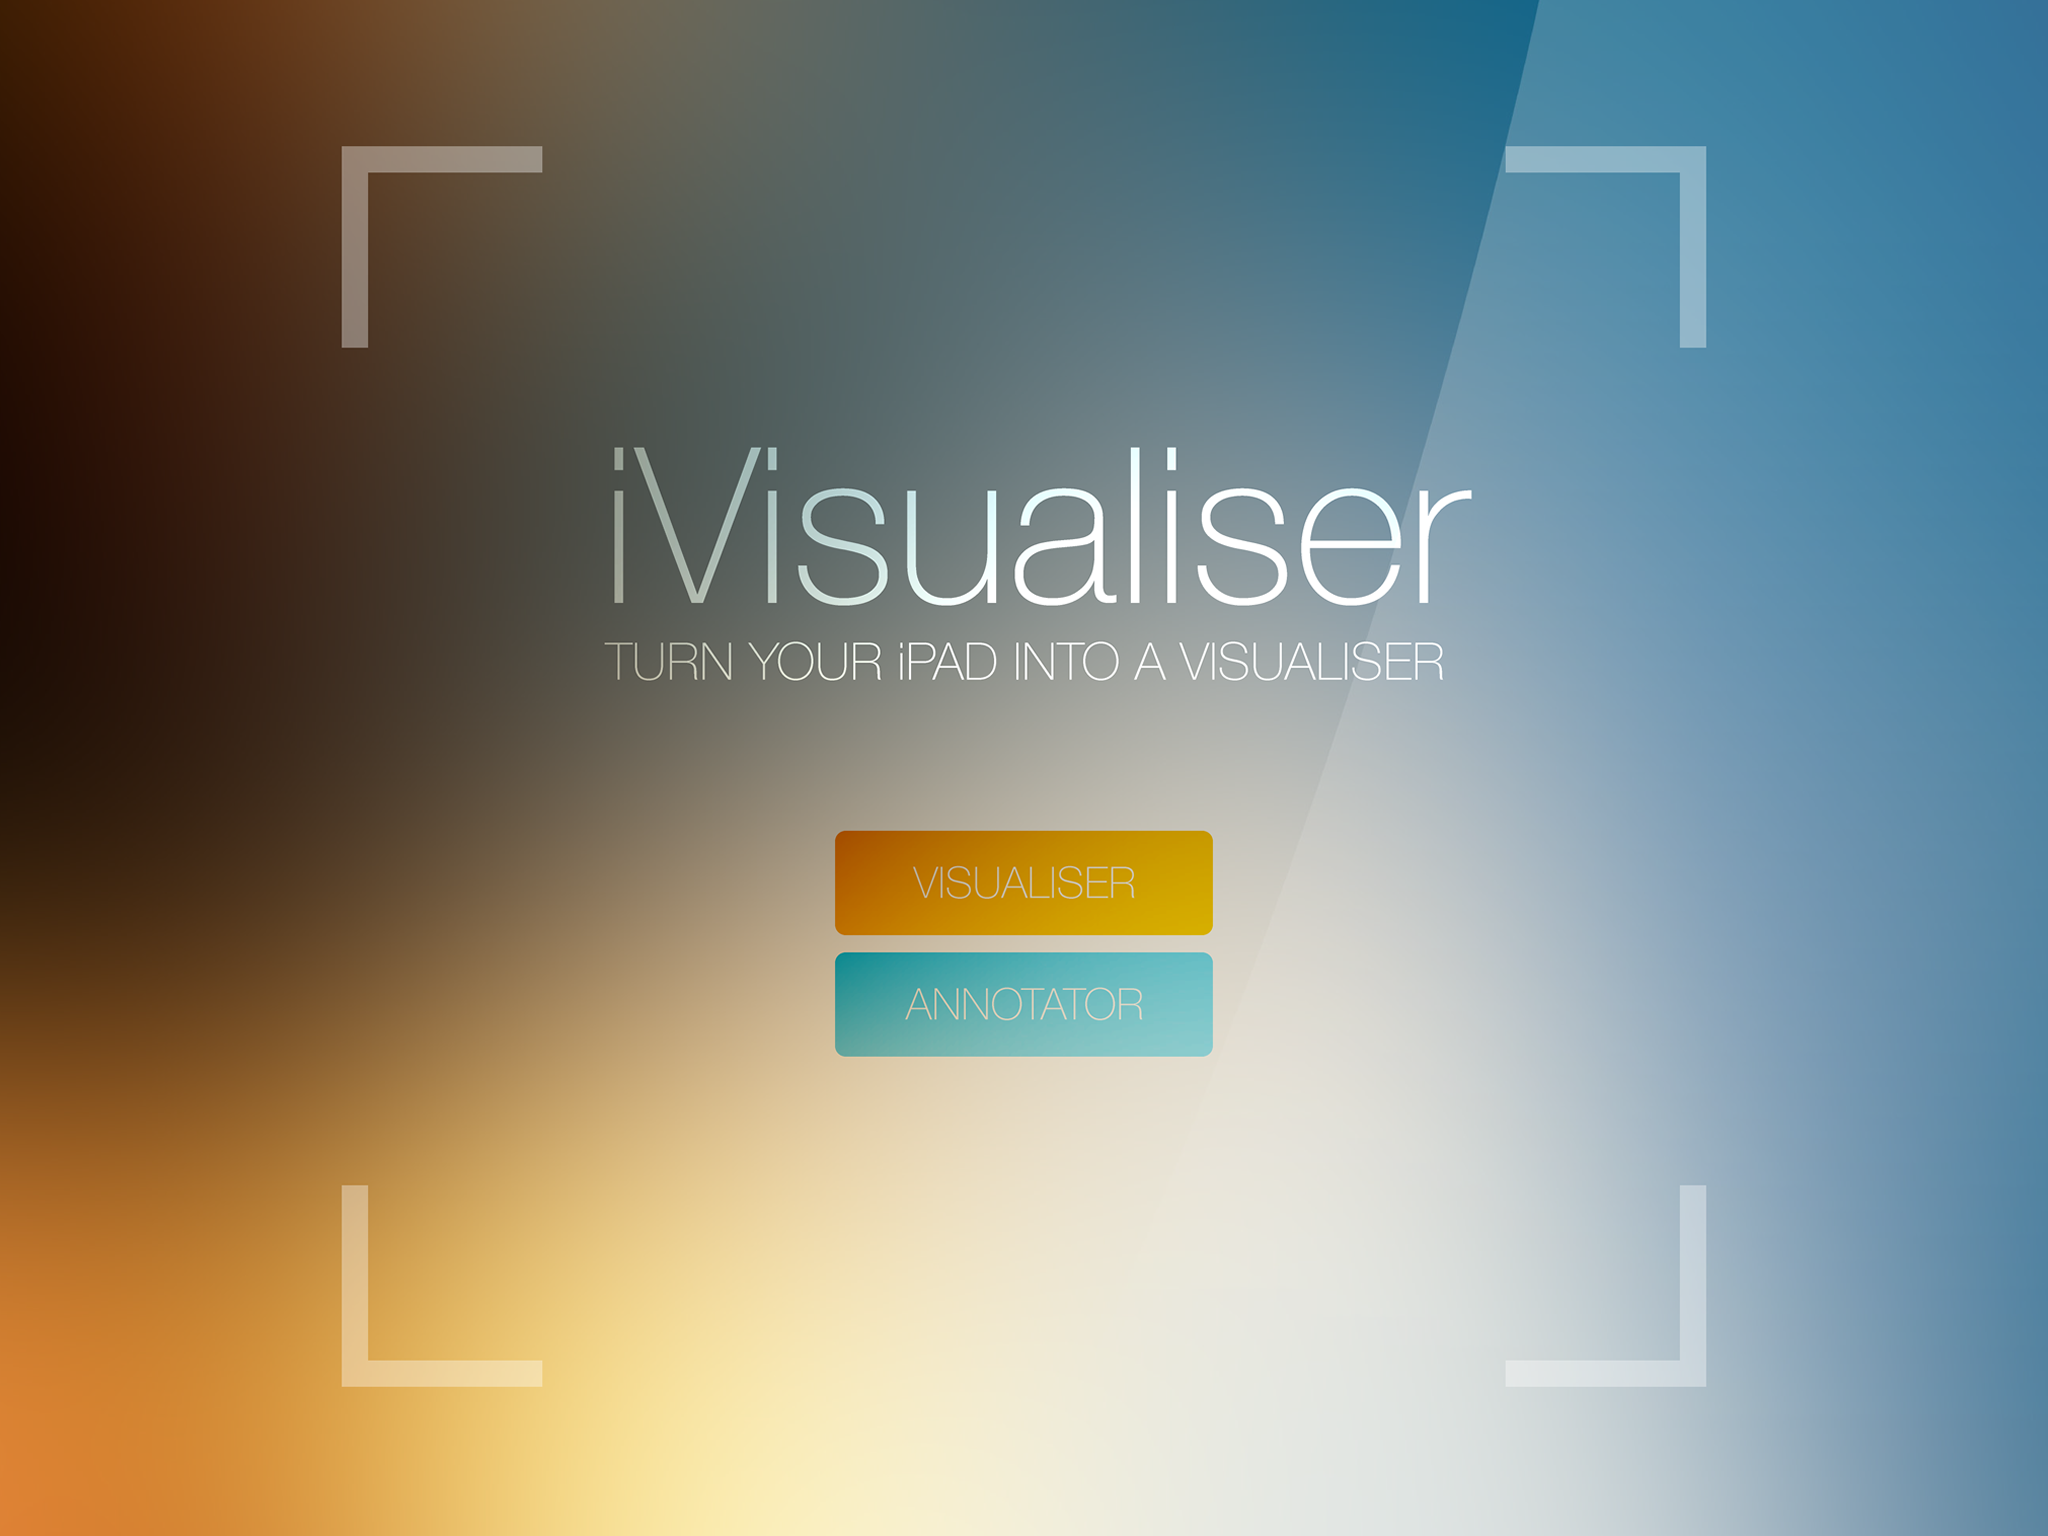 WOW! Download the iVisualiser app and turn your Ipad into a visualiser!